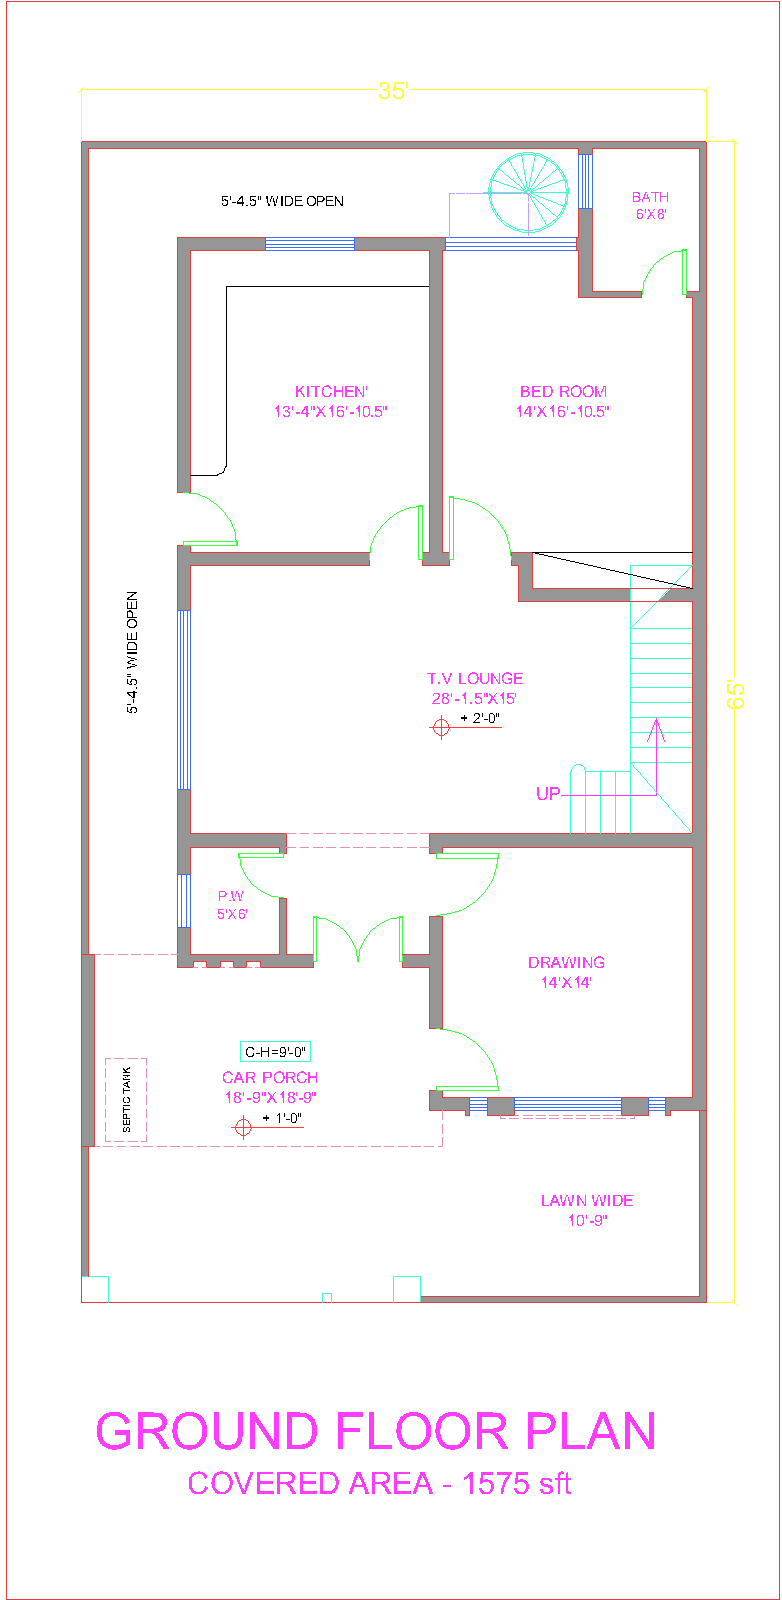 3d front 10 marla house plan layout House map online free